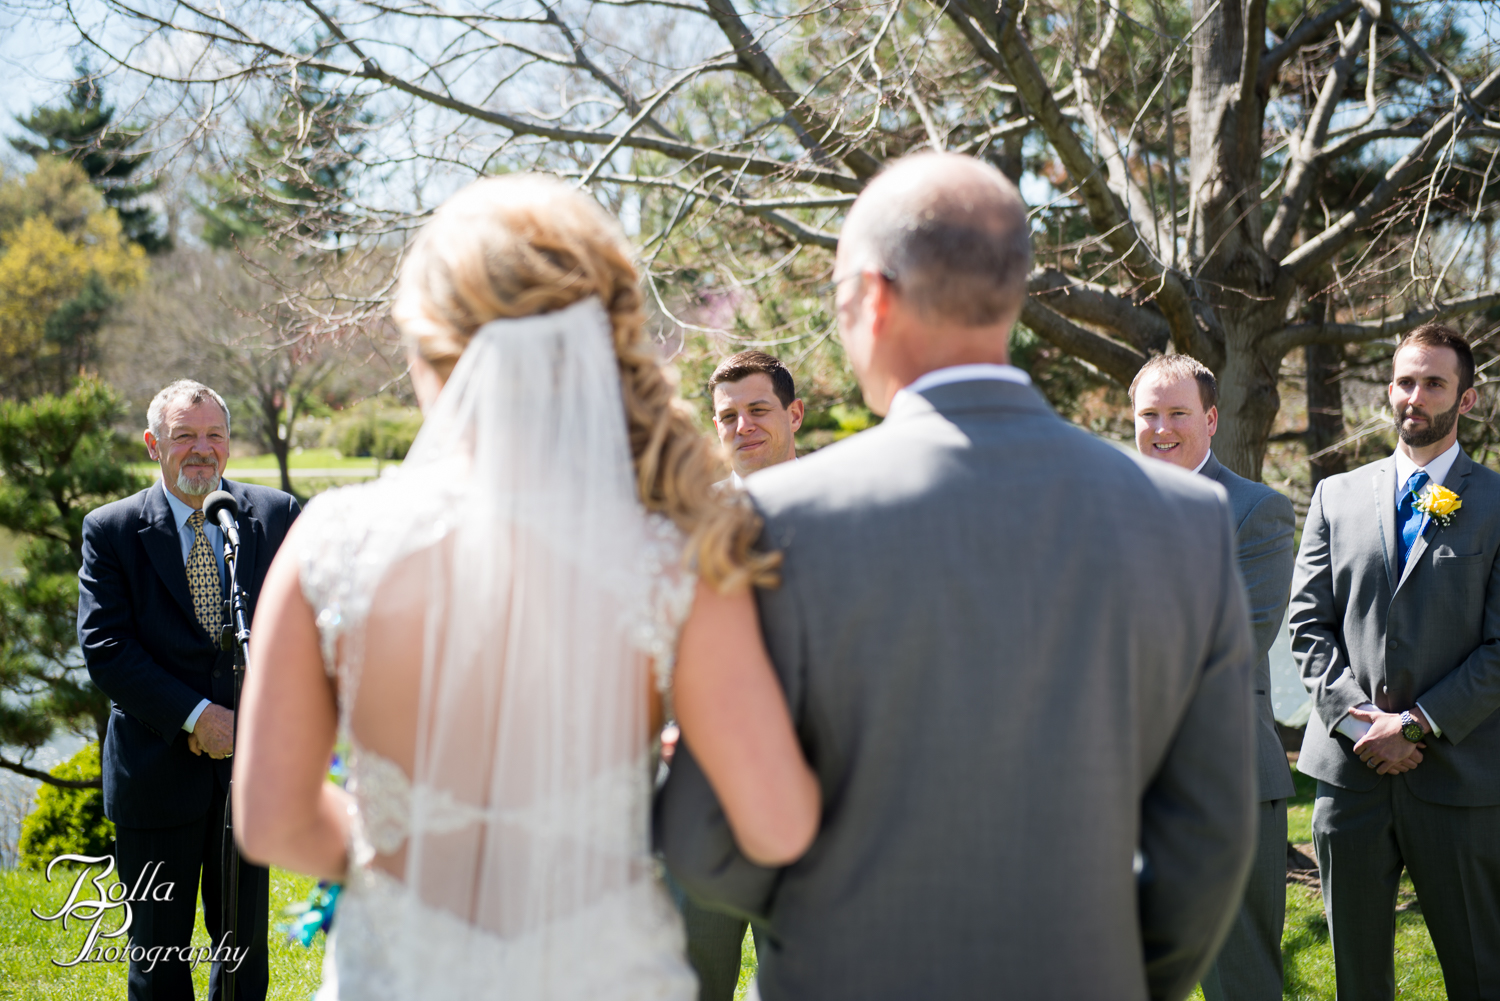 Bolla_Photography_St_Louis_wedding_photographer_Morgando_Blues_hockey_Botanical_Gardens_spring-0180.jpg